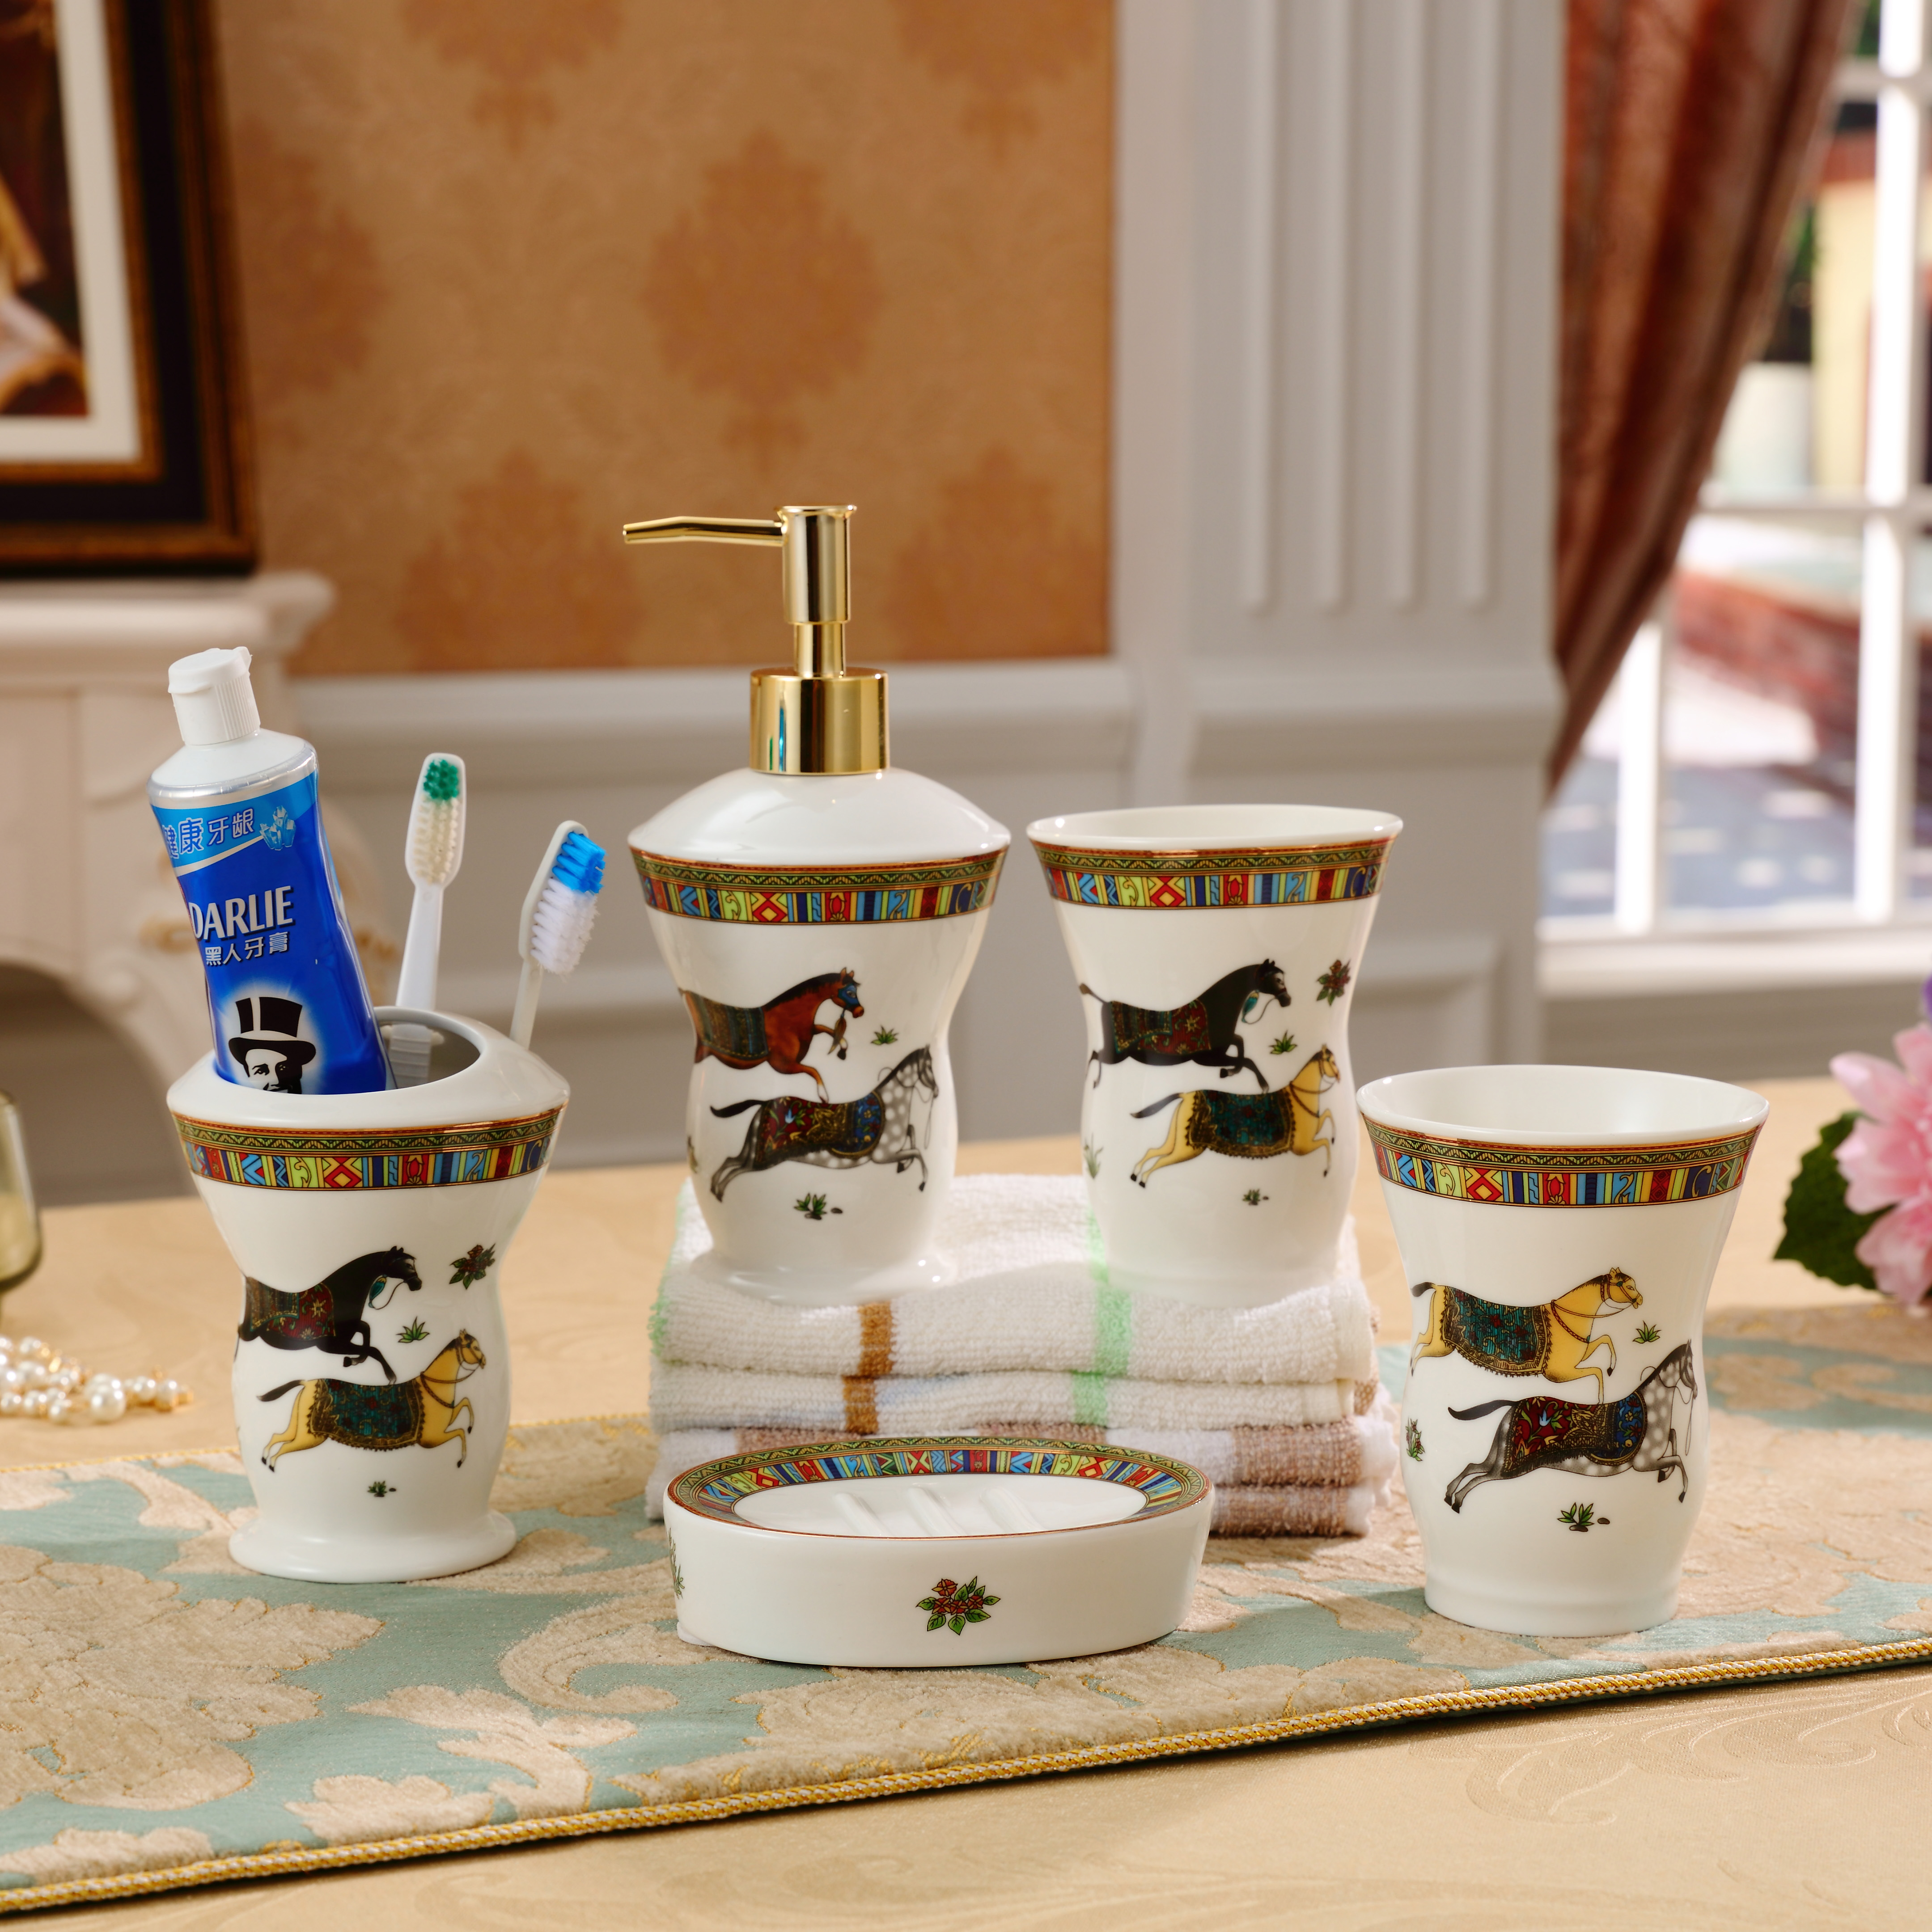 Horse Toilet Accessories set Bathroom sets ceramic Toothbrush holder Lotion dispenser Mouth cups Soap dish for shower room